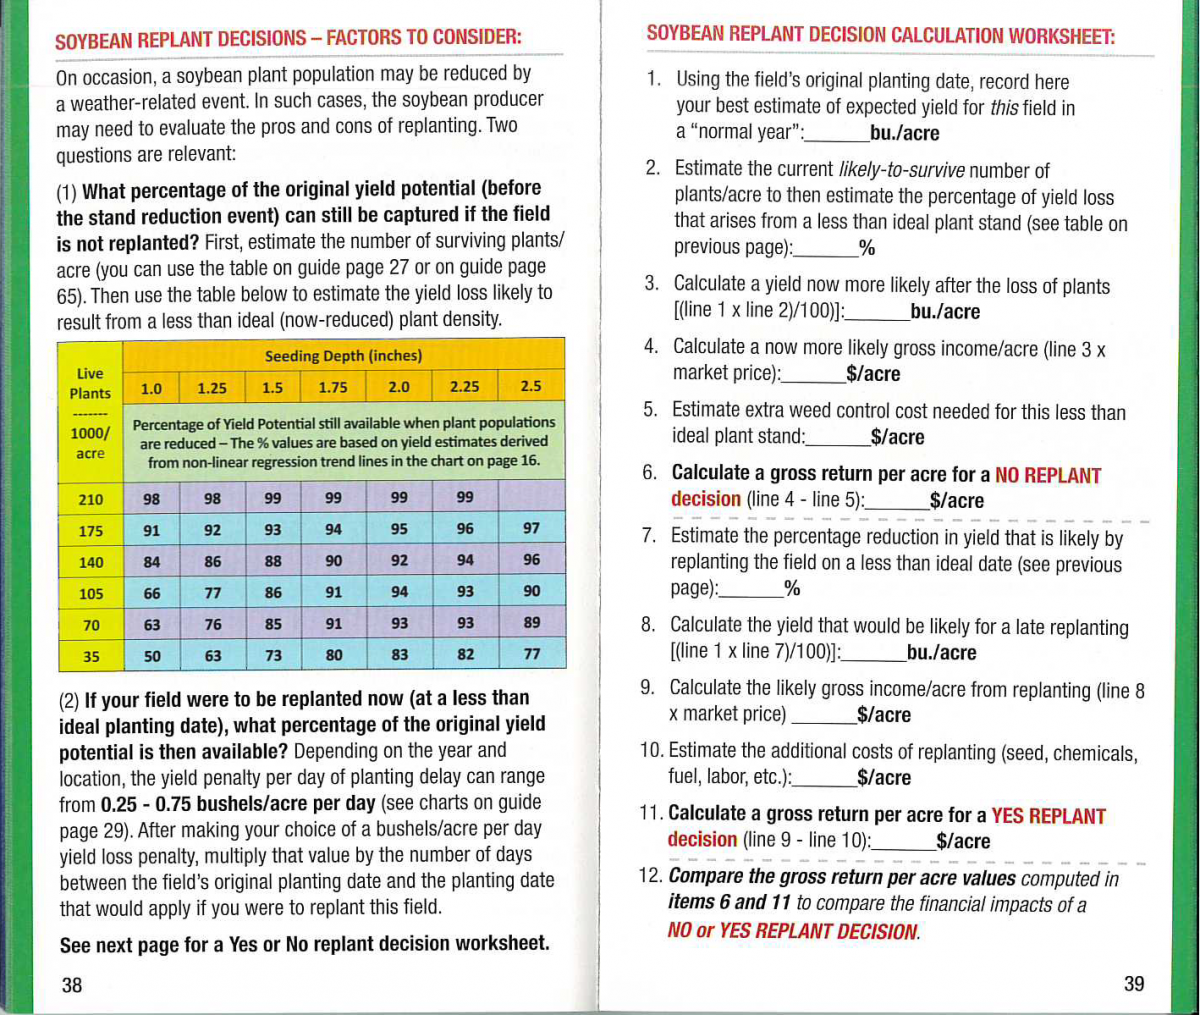 Soybean replant calculator from the Soybean and Corn Pocket Field Guide